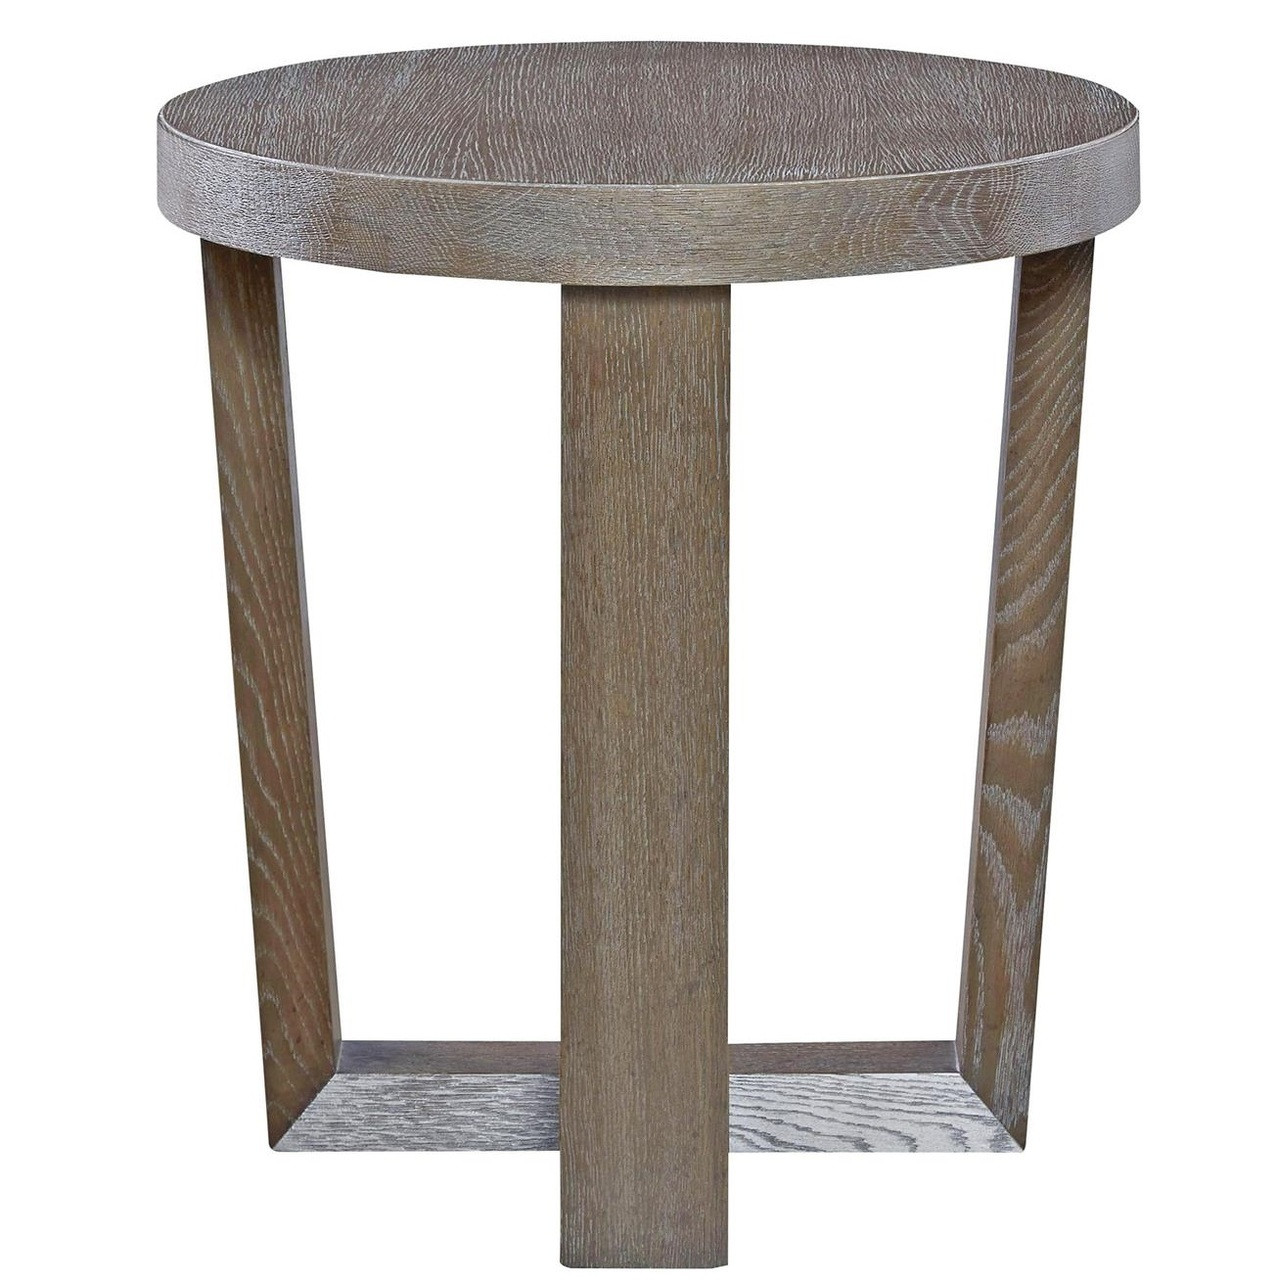 Wilshire Modern Oak Wood Round End Table